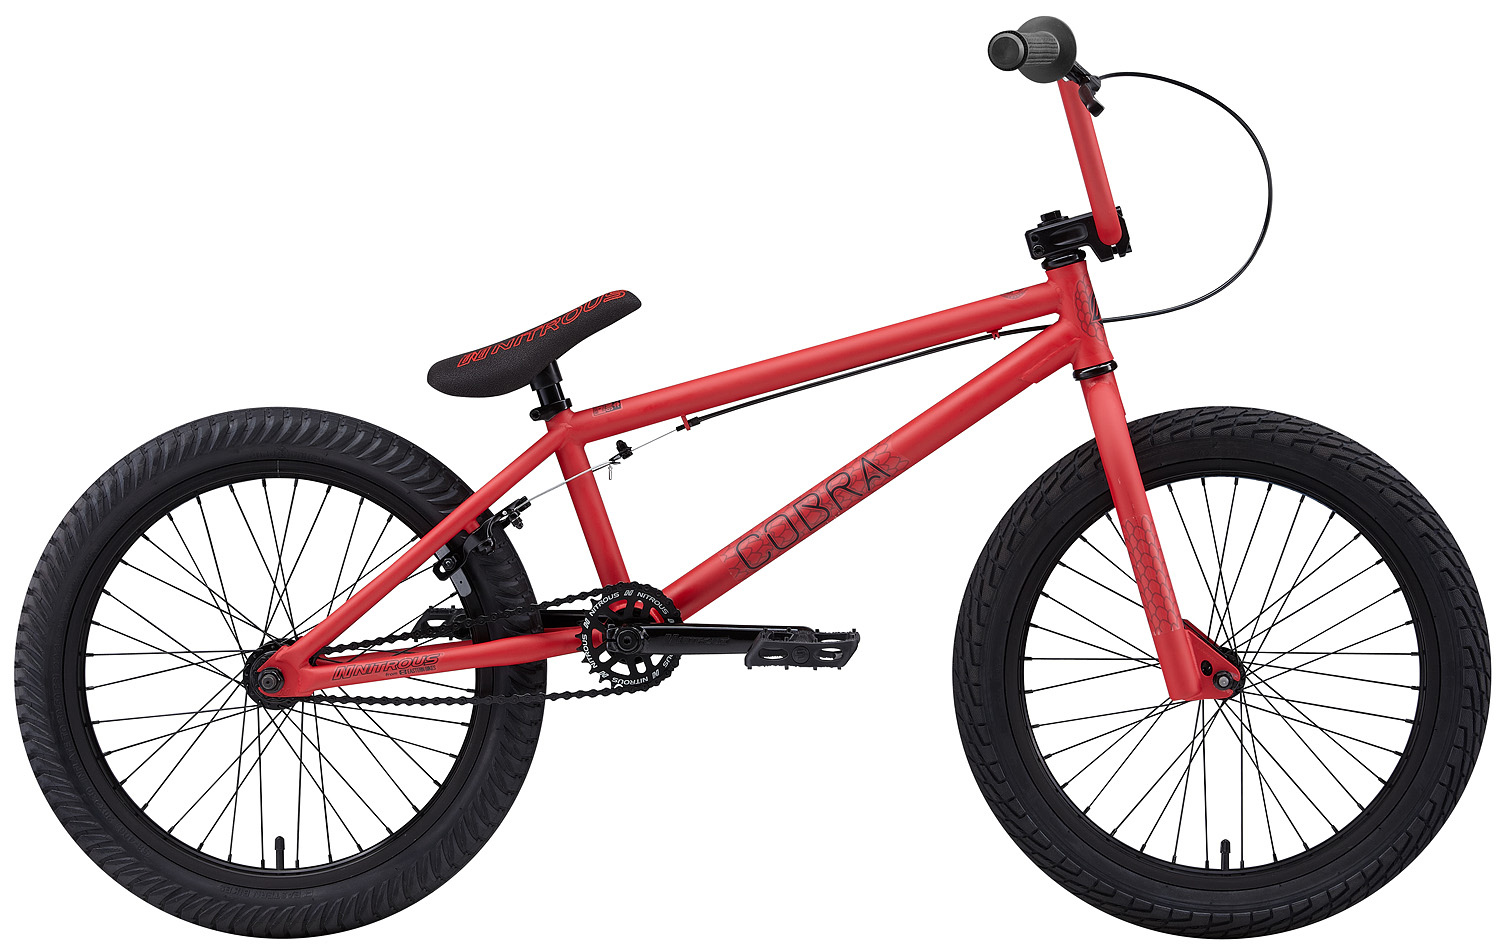 "BMX Key Features of the Nitrous Cobra BMX Bike: WEIGHT // 26.8 lbs. COLORS // Black/Black, Red/Black, Green/Black TOP TUBE SIZE // 20.25"" GEARING // 25/9 Micro-drive FRAME // Cobra Hi-Tensile Strength 1020 Steel Frame w/ lifetime upgrade policy** FORK // Cobra Hi-Tensile Strength 1020 Steel BARS // 8.0""x 28.5"" , 1? Upsweep, 12? Backsweep HEADSET // 1-1/8"" Aheadset BB // American Loose Ball Bearing PEDALS // Eastern Crown pedals GRIPS // Eastern Wiz Signature Grip STEM // Forged Alloy Front Load SPROCKET // 25T Steel w/ Nitrous Graphic CRANKS // Nitrous Shifter 175mm tubular chromoly heat-treated 3pc. cranks w/ 8 spline spindle SEAT // Nitrous Logo 1-Piece Seat/Alloy Post Combo TIRES // LHR Multi-Surface , 20"" x 2.20"" FRONT HUB // 36H 3/8"" Loose Ball Bearing REAR HUB // KT/Quando semi-sealed 36H cassette hub. 1-piece 9-tooth chromoly driver, hollow 14mm chromoly axle RIMS // Alloy 36 Hole REAR BRAKES // Forged Alloy U-Brake / Straight Cable / Forged Alloy lever, Designed for U-Brakes FREEWHEEL // 9T 1-Piece Chromoly Driver CHAIN // KMC Z510 SEAT CLAMP // Nitrous Locker Forged Alloy Clamp - $269.95"